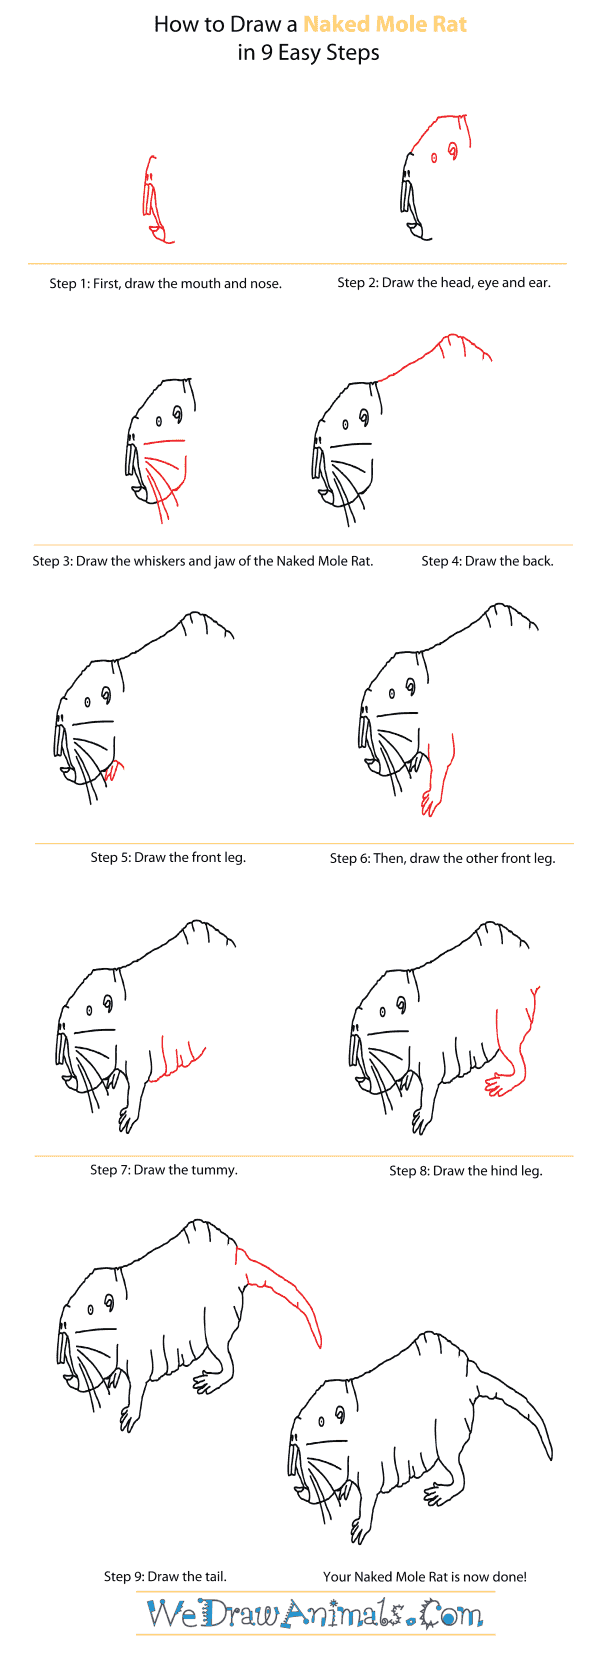 How To Draw A Naked Mole Rat  Stepbystep Tutorial